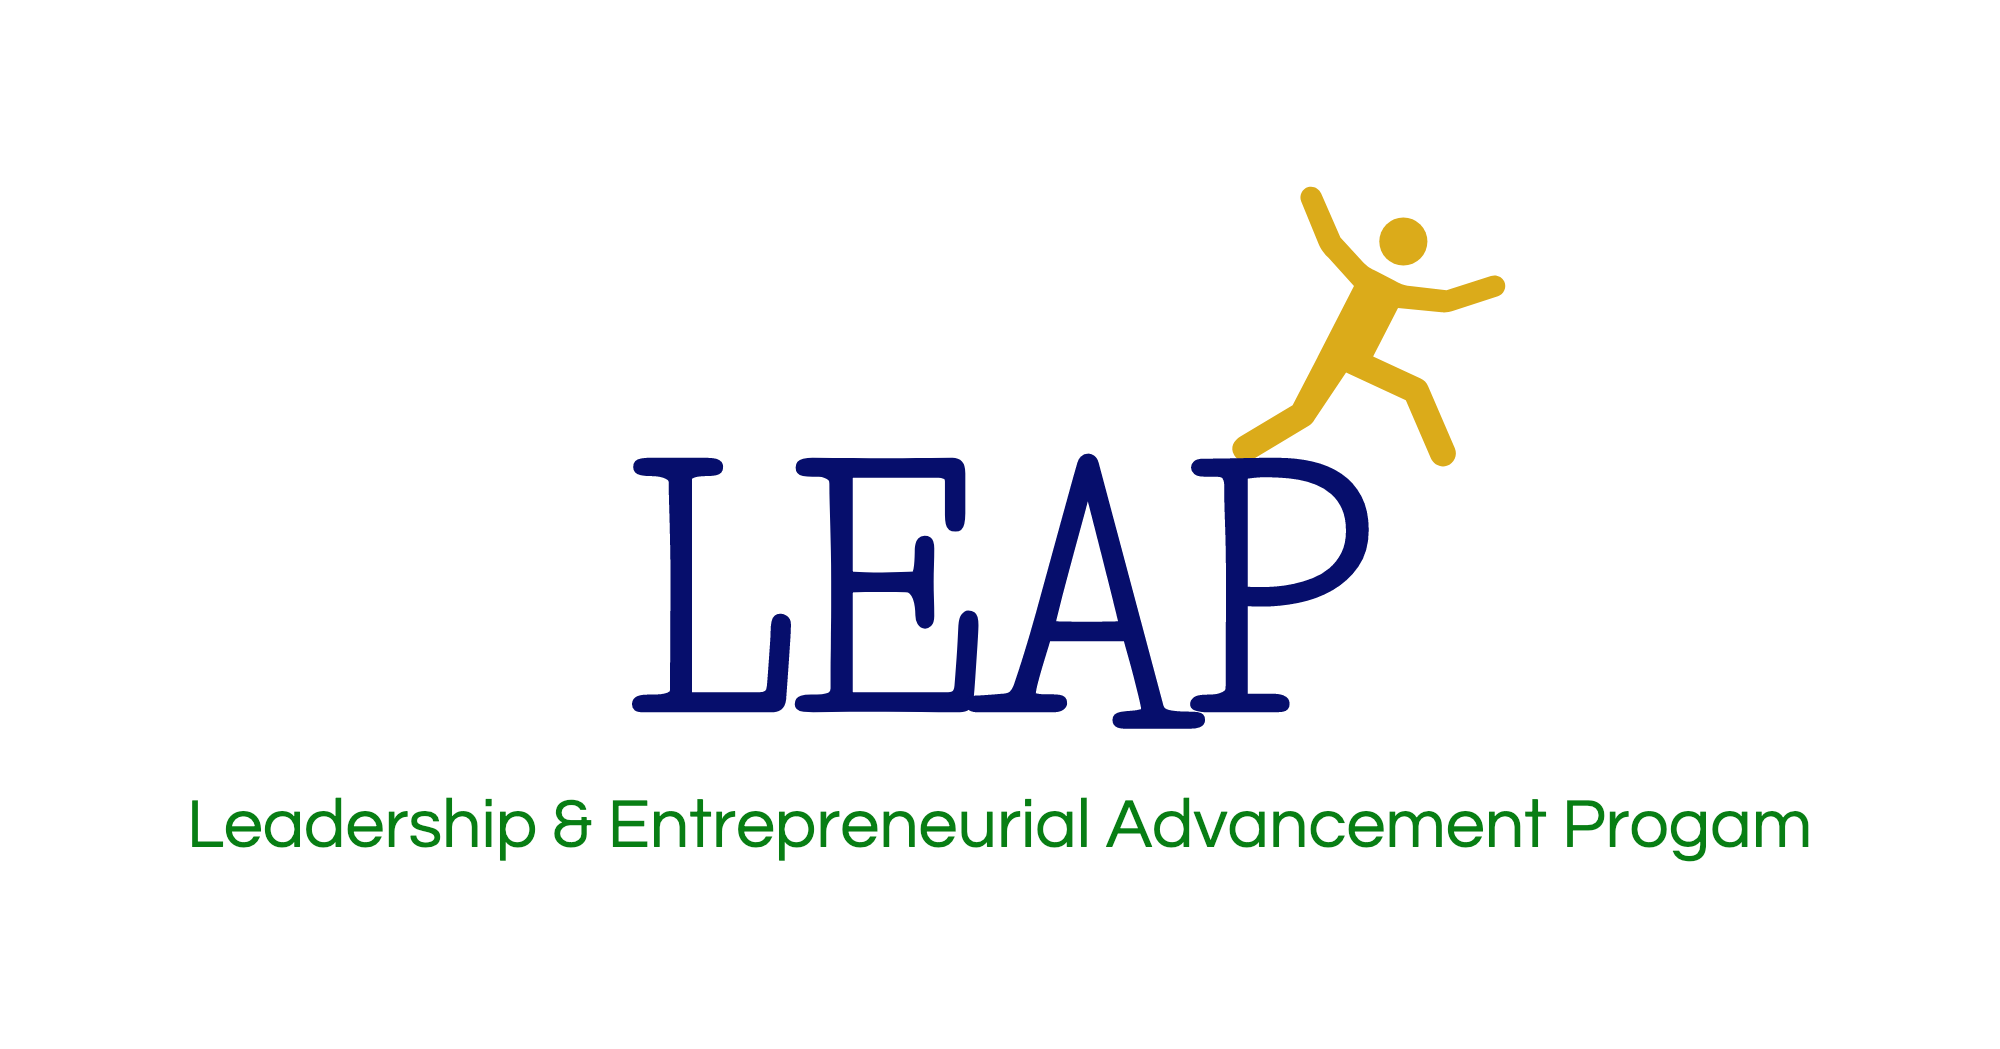 Below is the Application for the Leadership & Entrepreneurial Advancement Program (LEAP)! - Please email lschott@whitemountainscience.org if you have any questions. Thank you for your interest in joining this event!